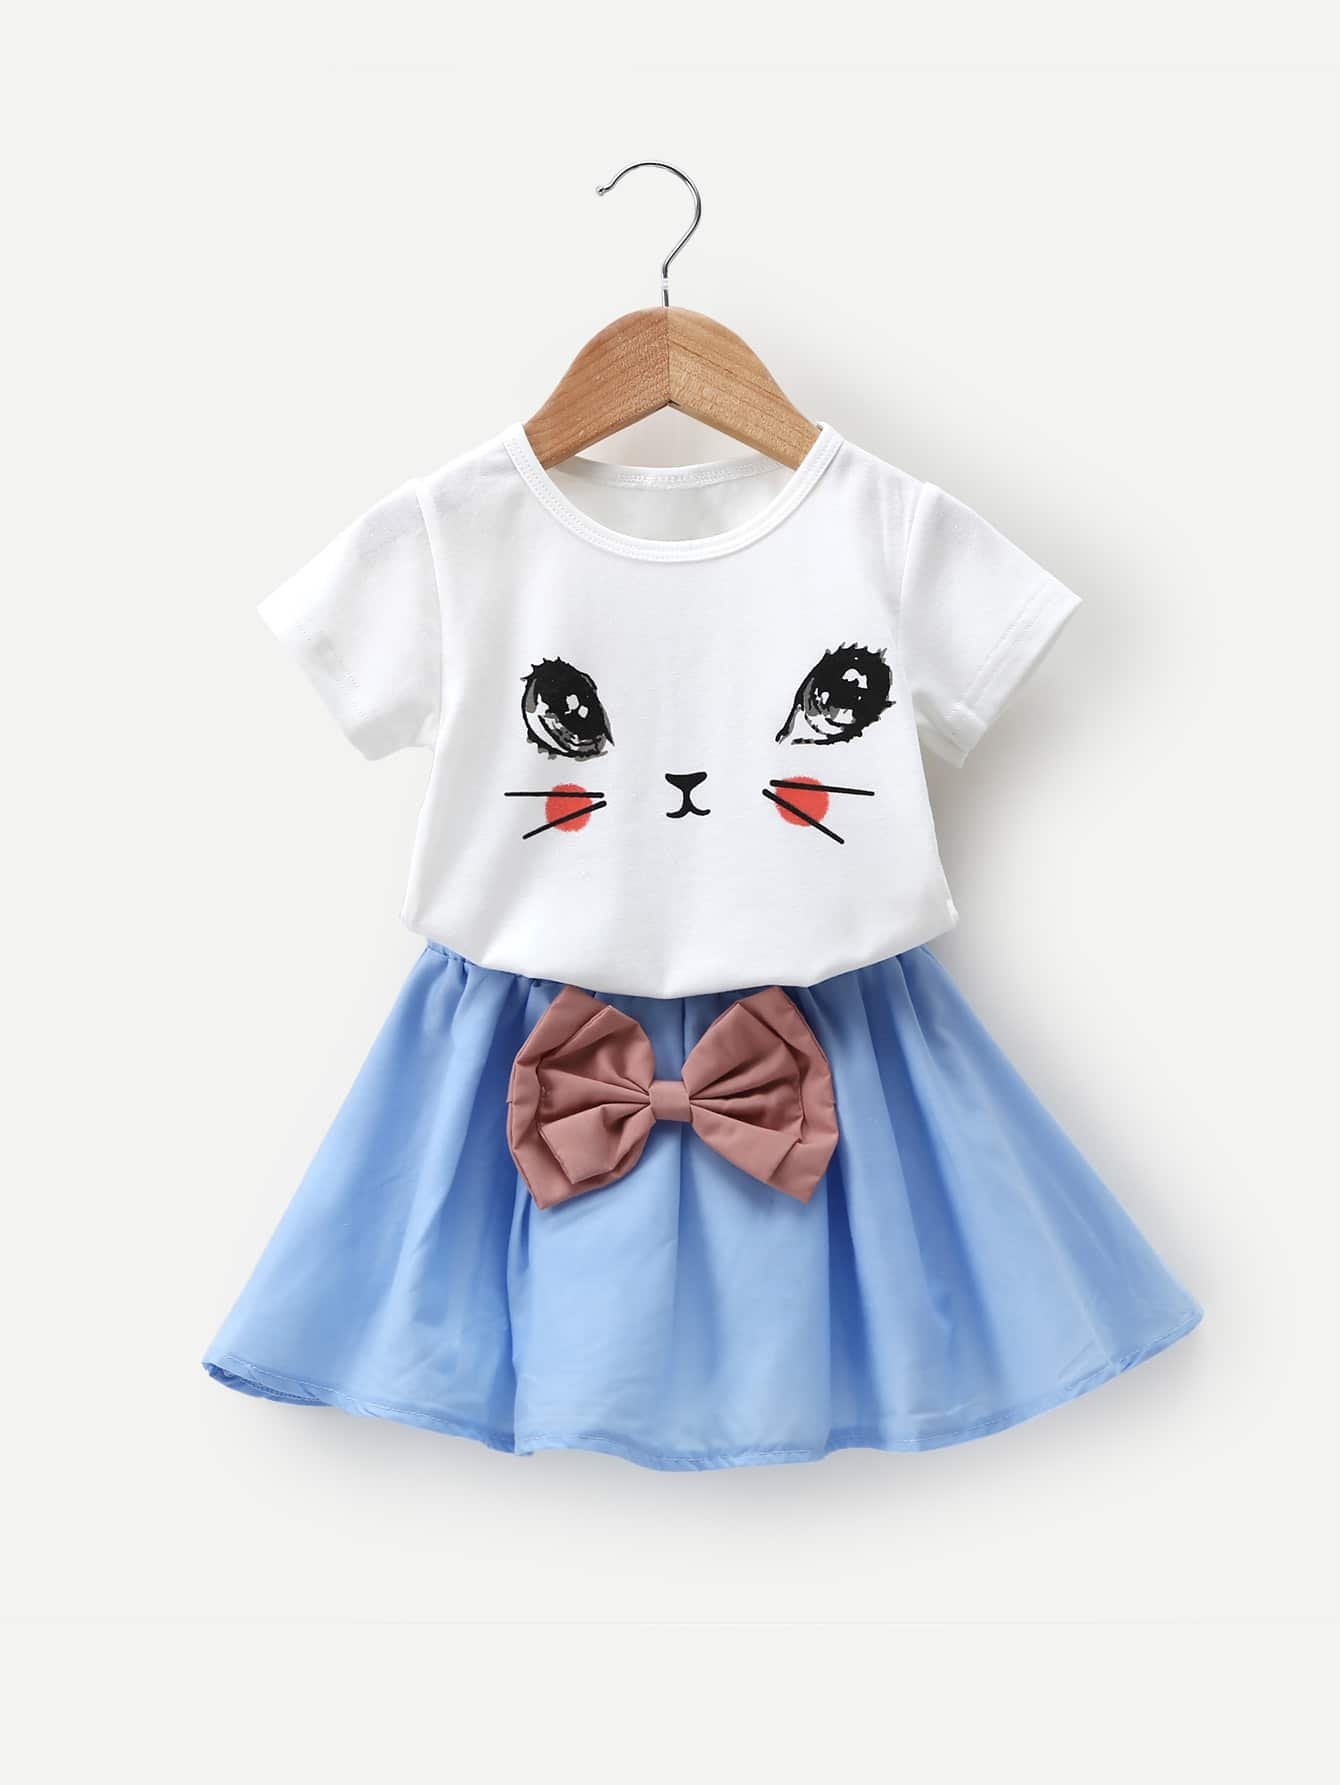 Girls Cartoon Print Tee With Bow Detail Skirt